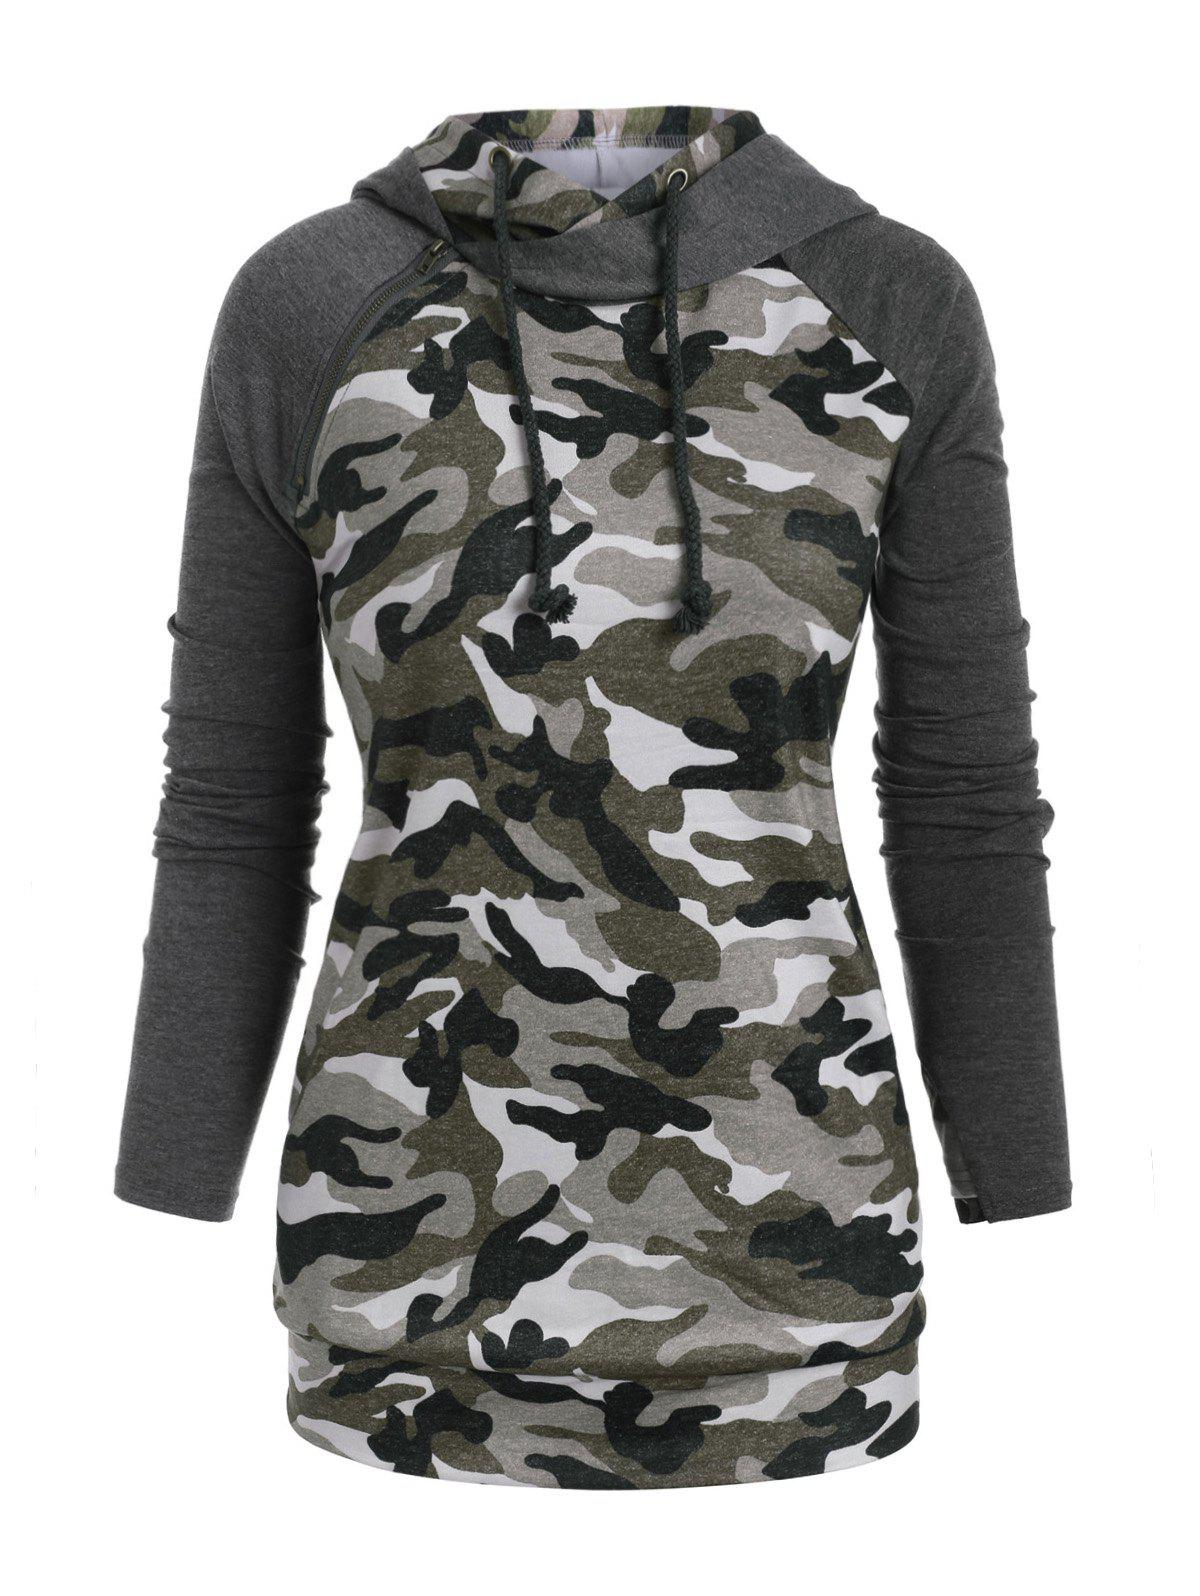 Fashion Raglan Sleeve Zippered Camouflage Pockets Plus Size Hoodie